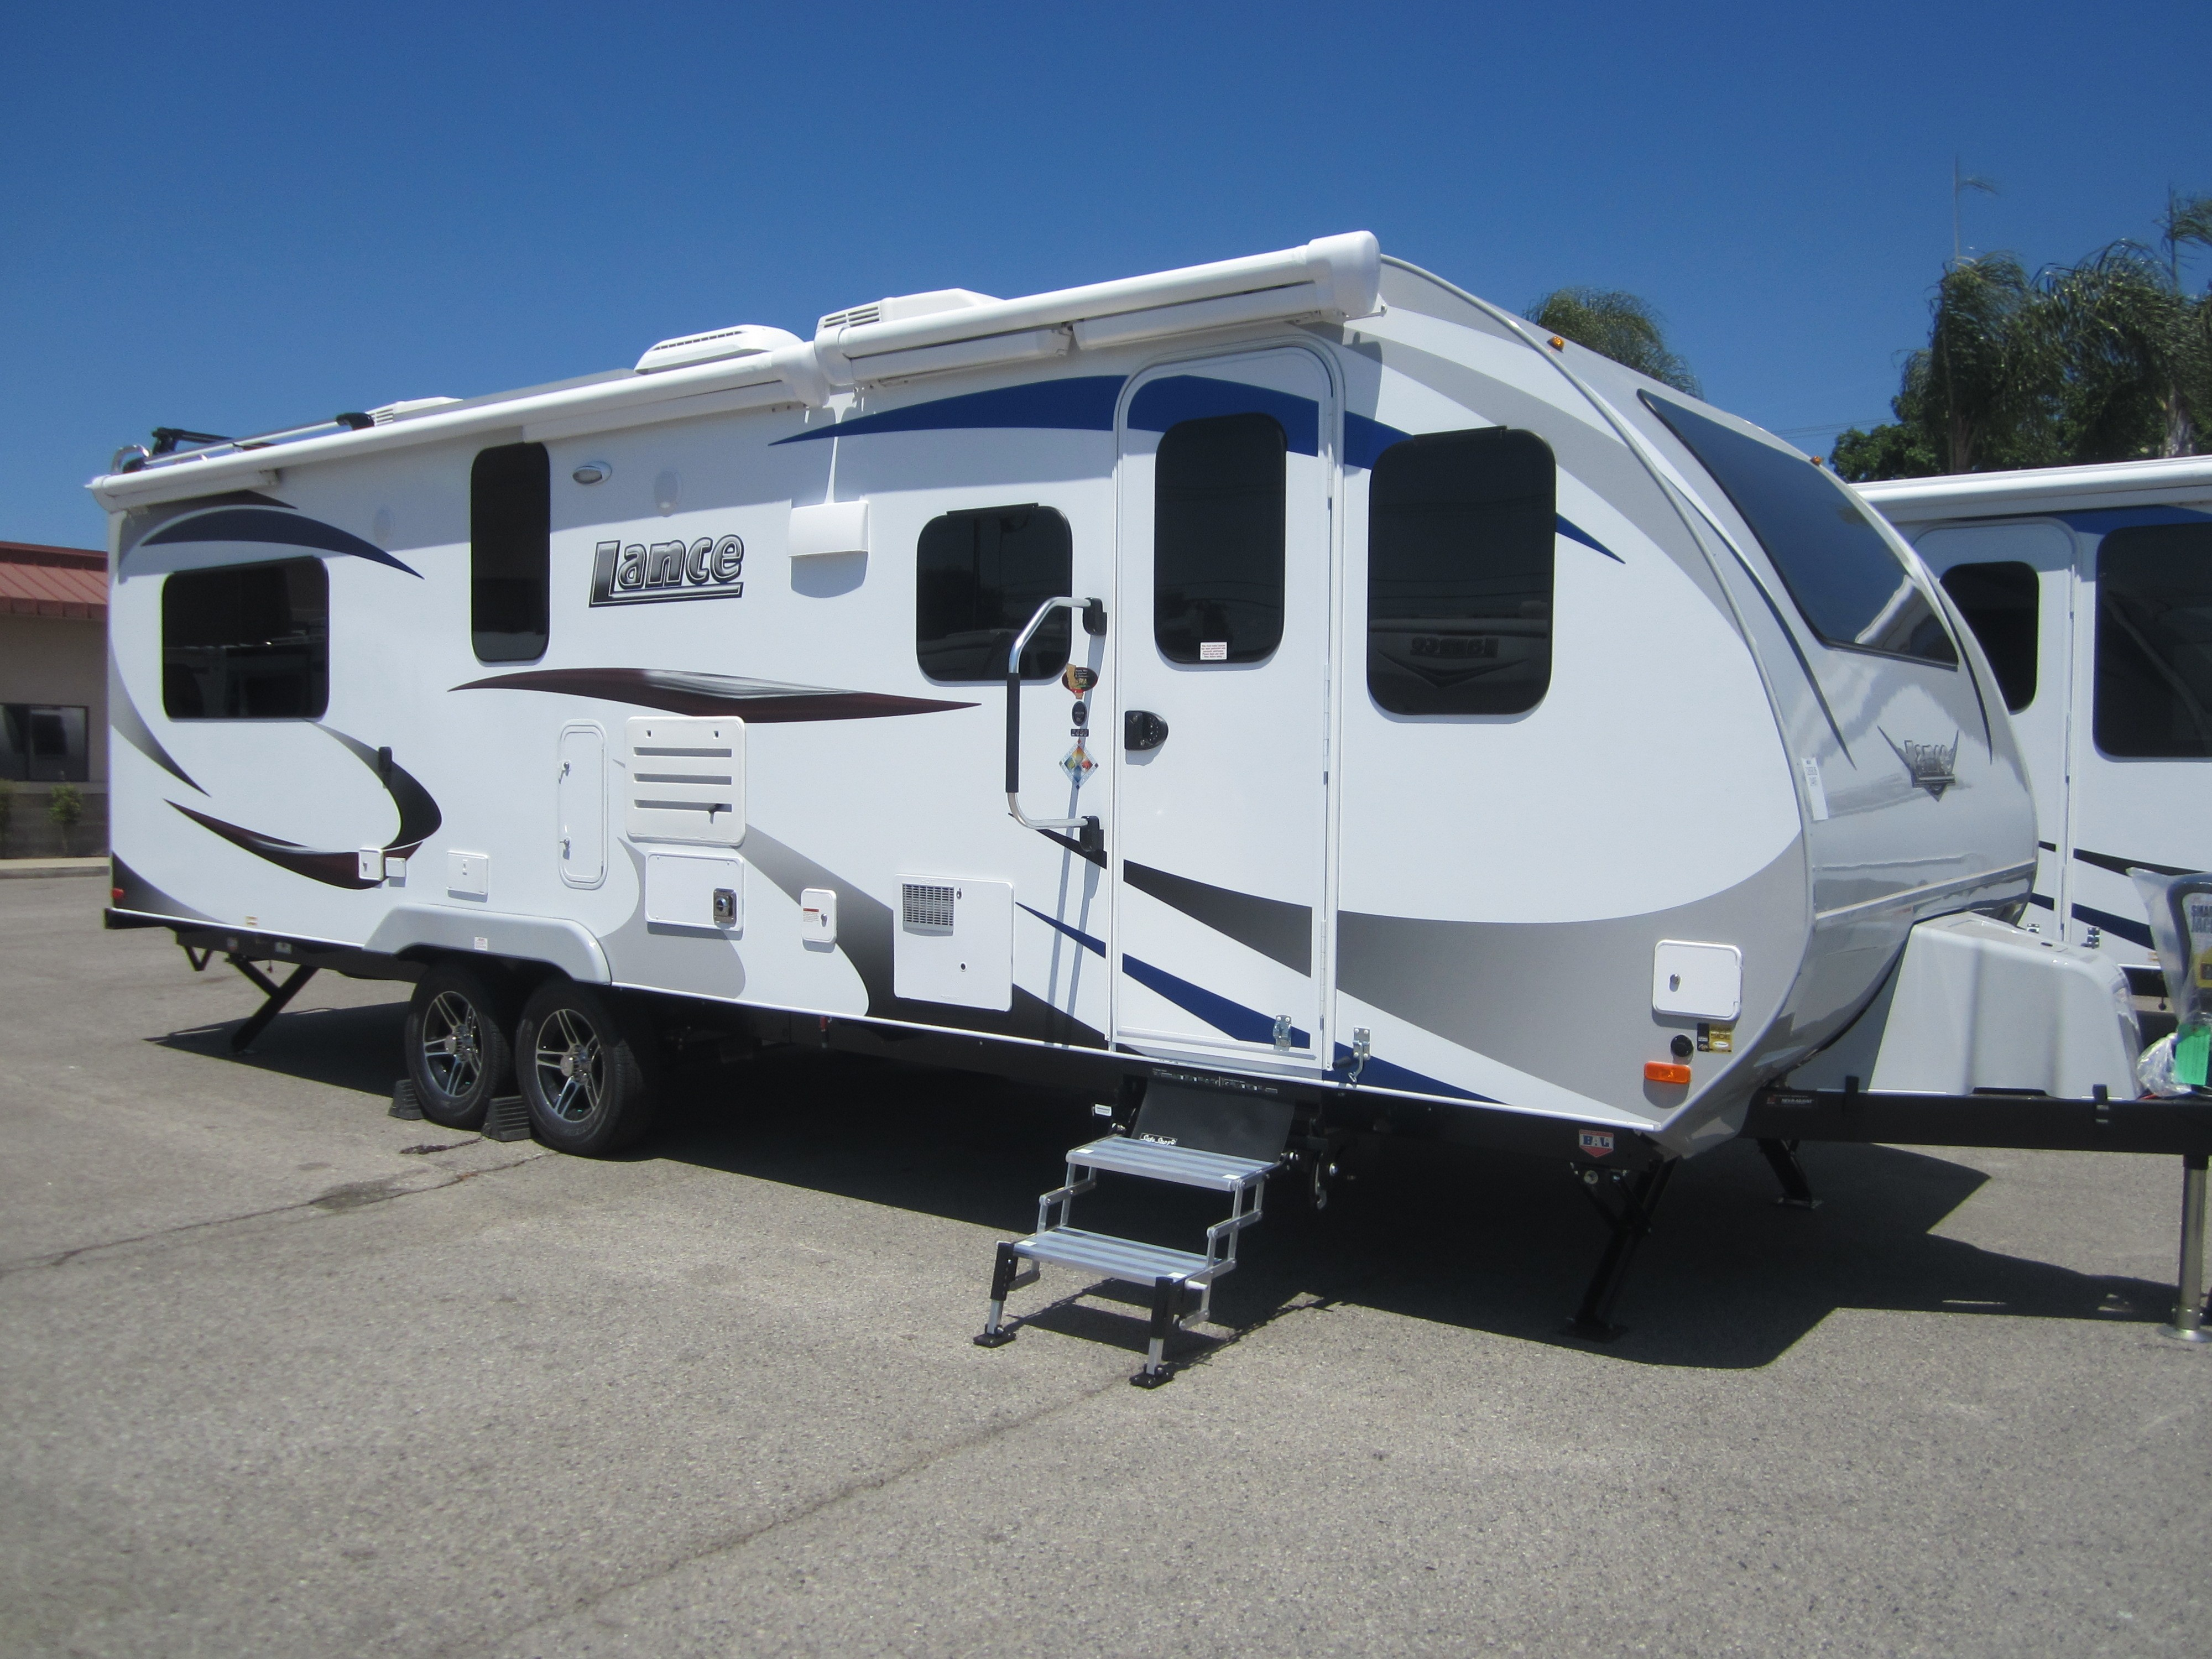 Rv Trailers For Sale Ontario >> 2020 Lance 2465 For Sale In Ontario Ca Rv Trader